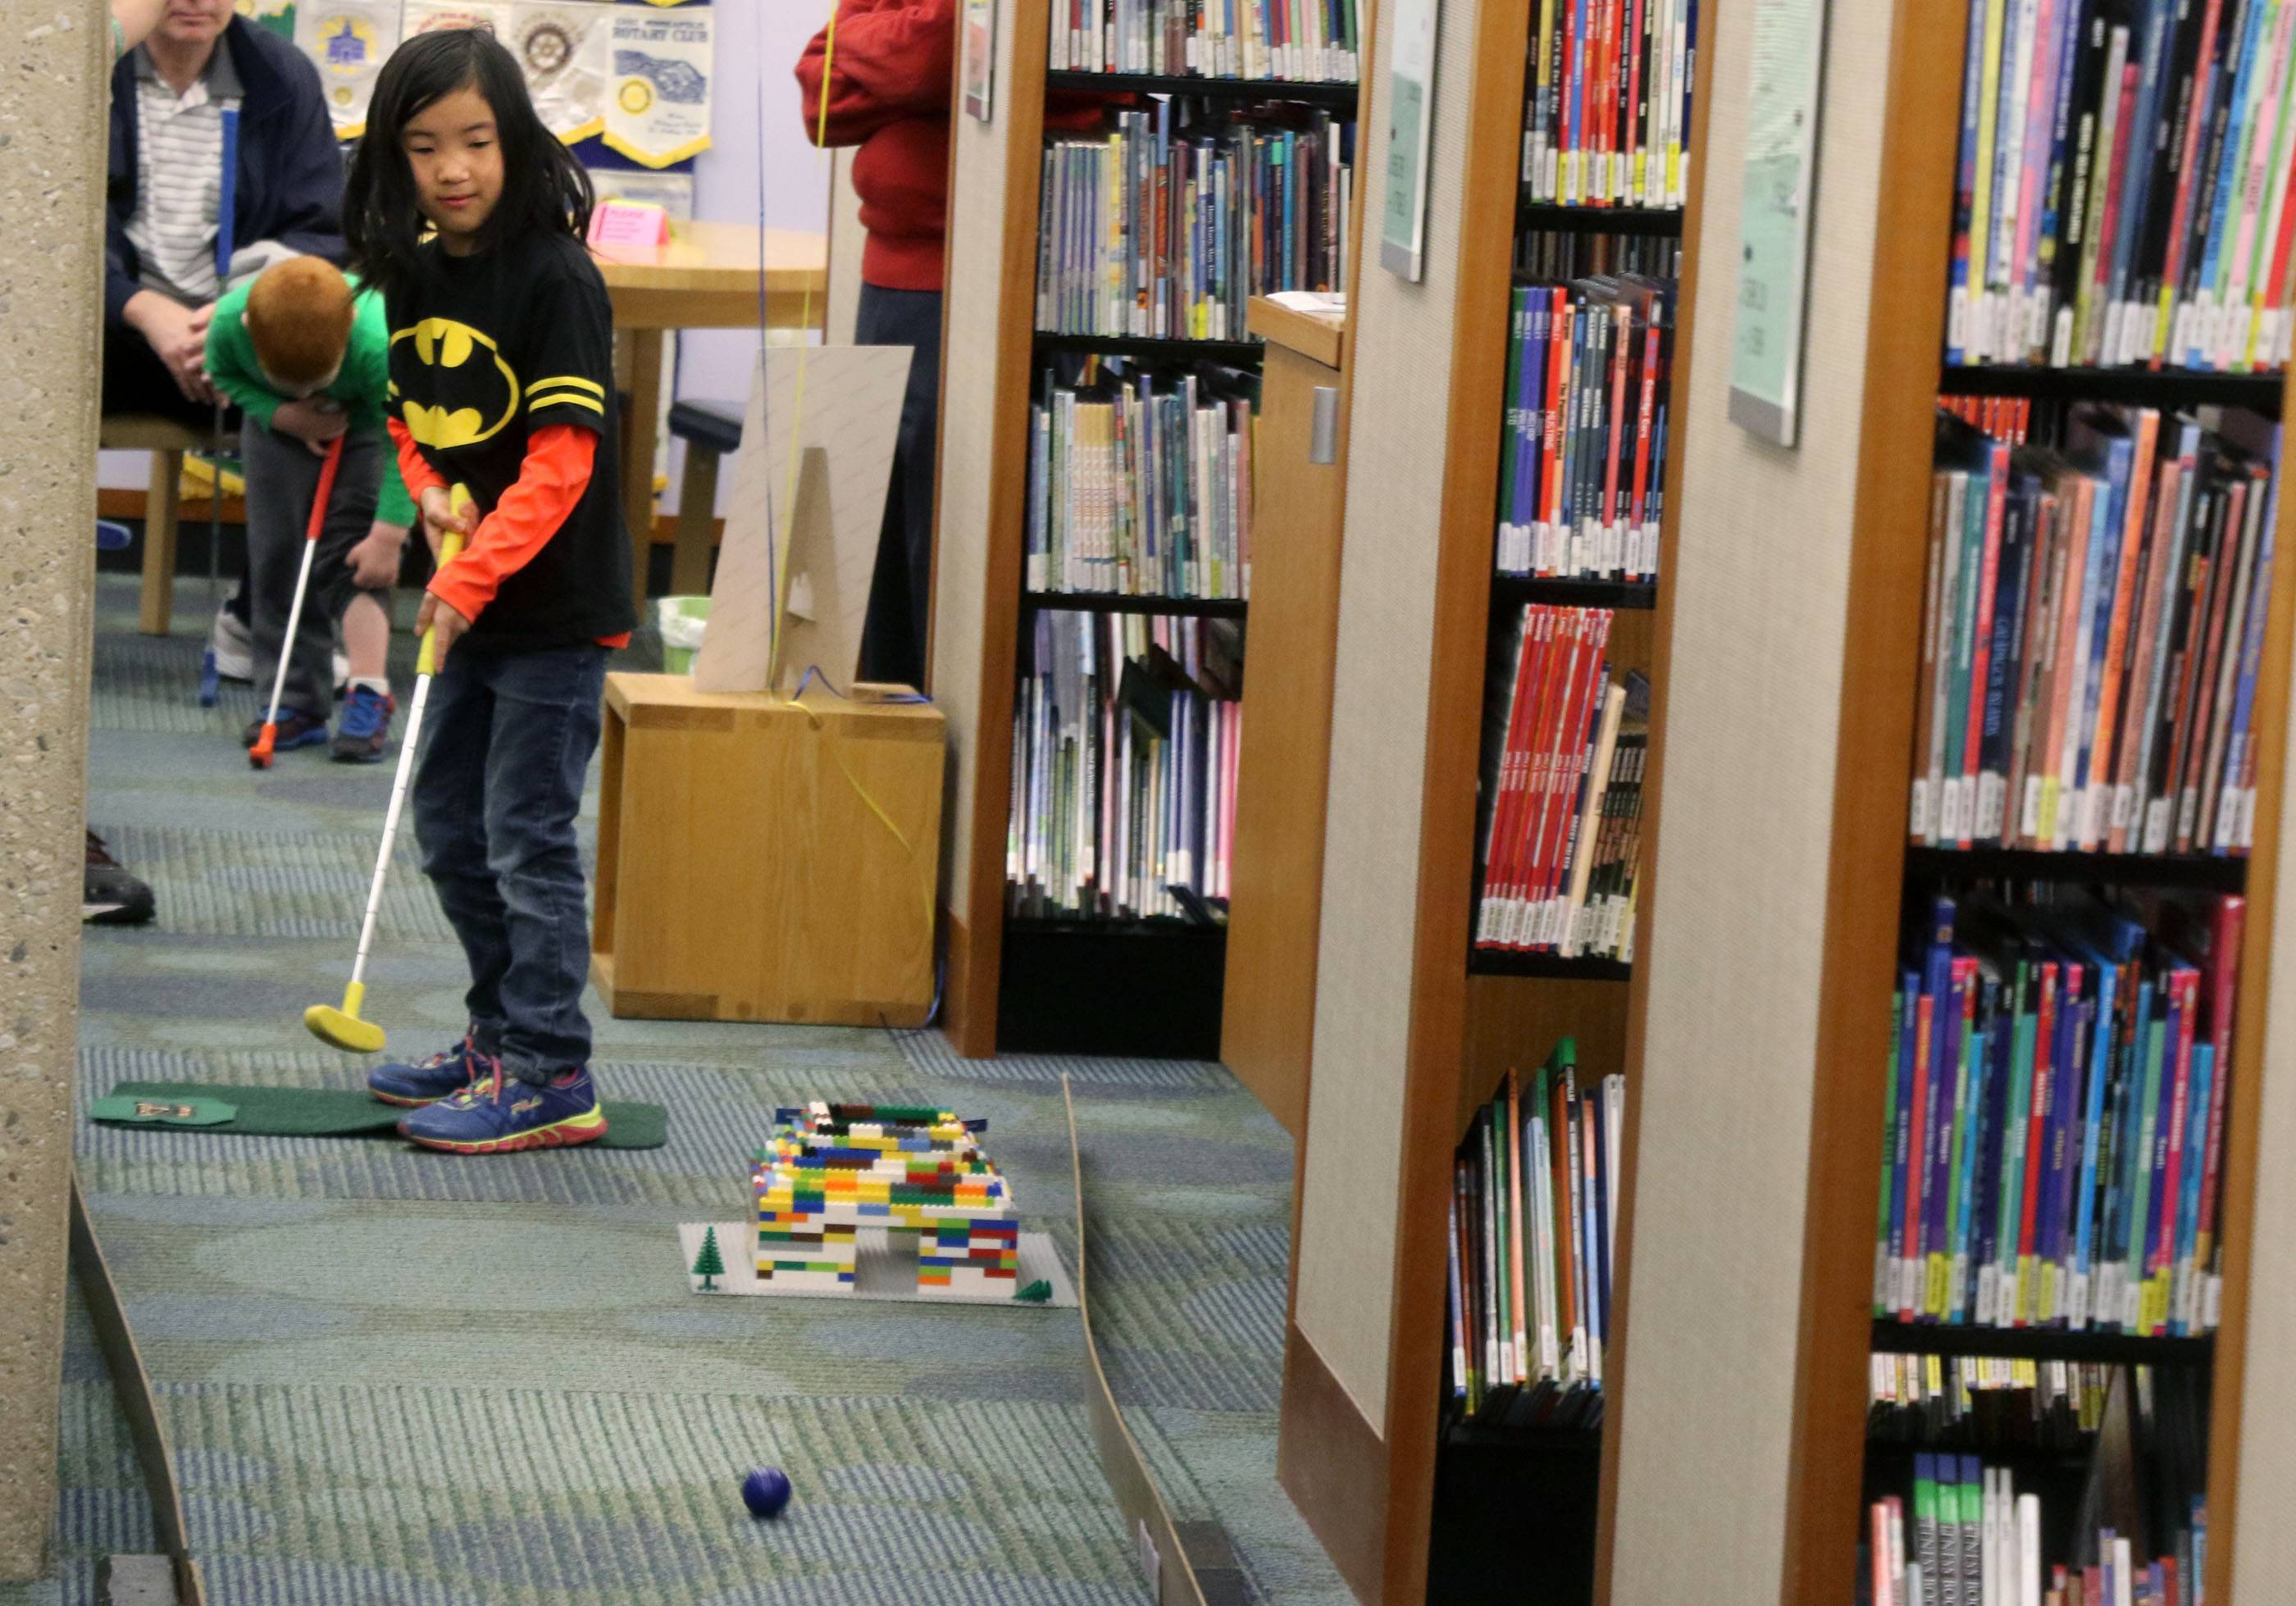 Jenna Fasick, 6, of Mount Prospect, plays hole 12 of an 18-hole miniature golf course at the Mount Prospect Library as part of a fundraiser in Mount Prospect.